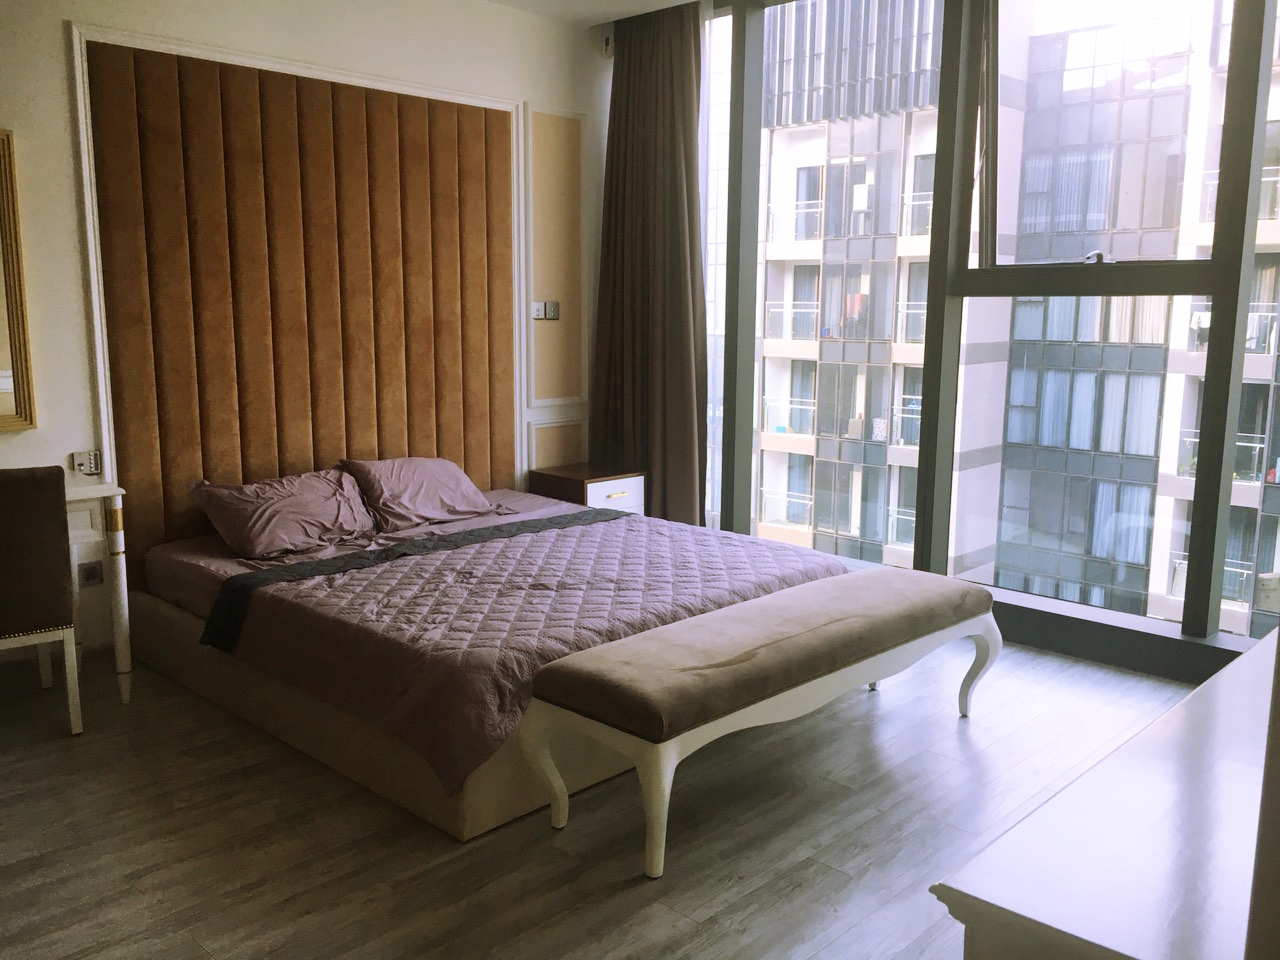 vinhomes golden river apartment for rent in district 1 hcmc D1022699 (5)